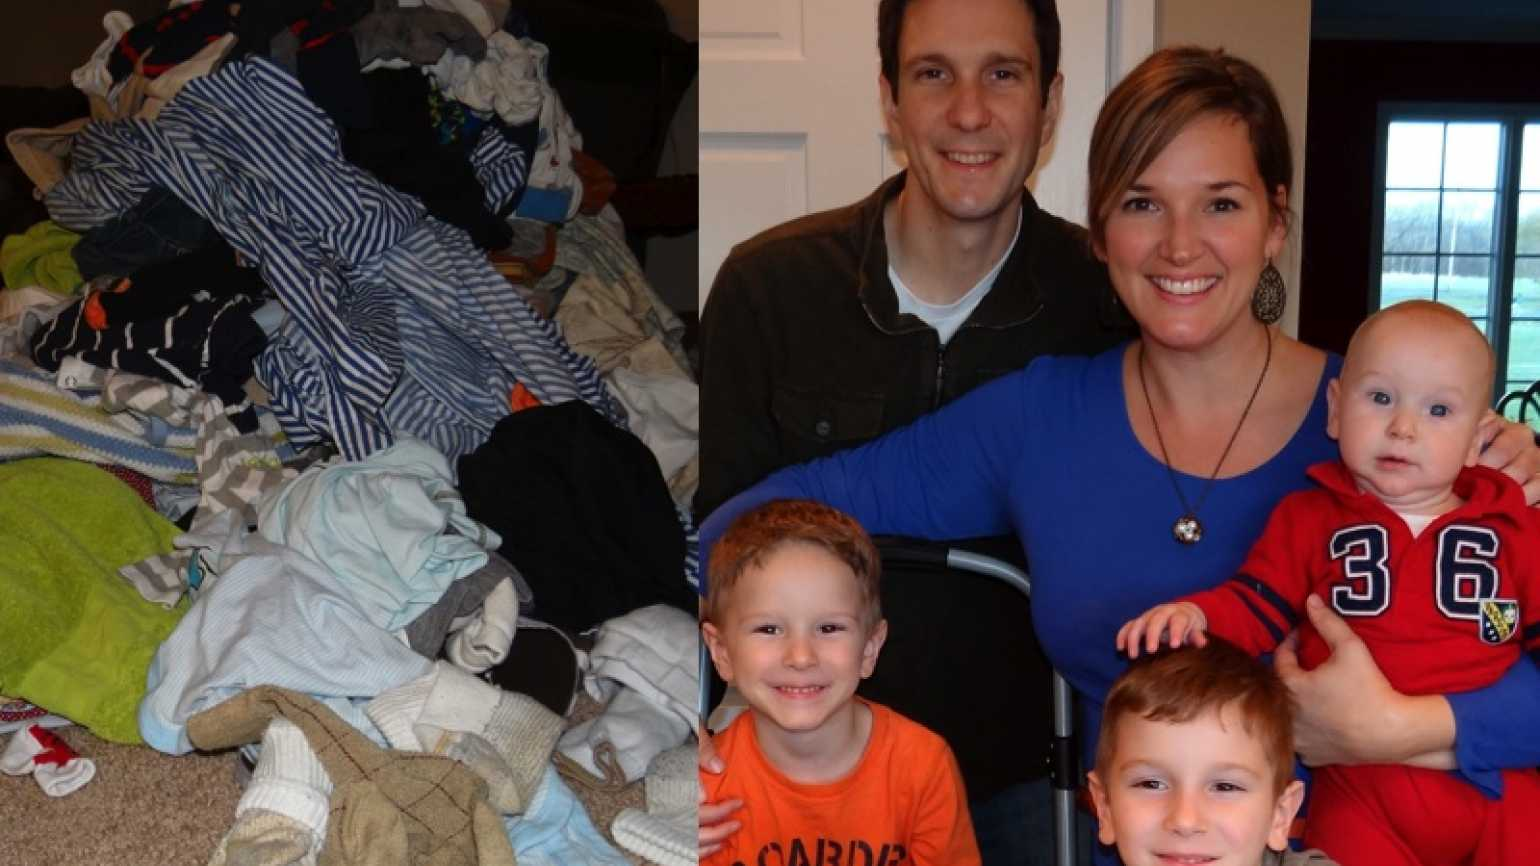 Blogger and author Rachel Gerber, her family and a mountain of laundry